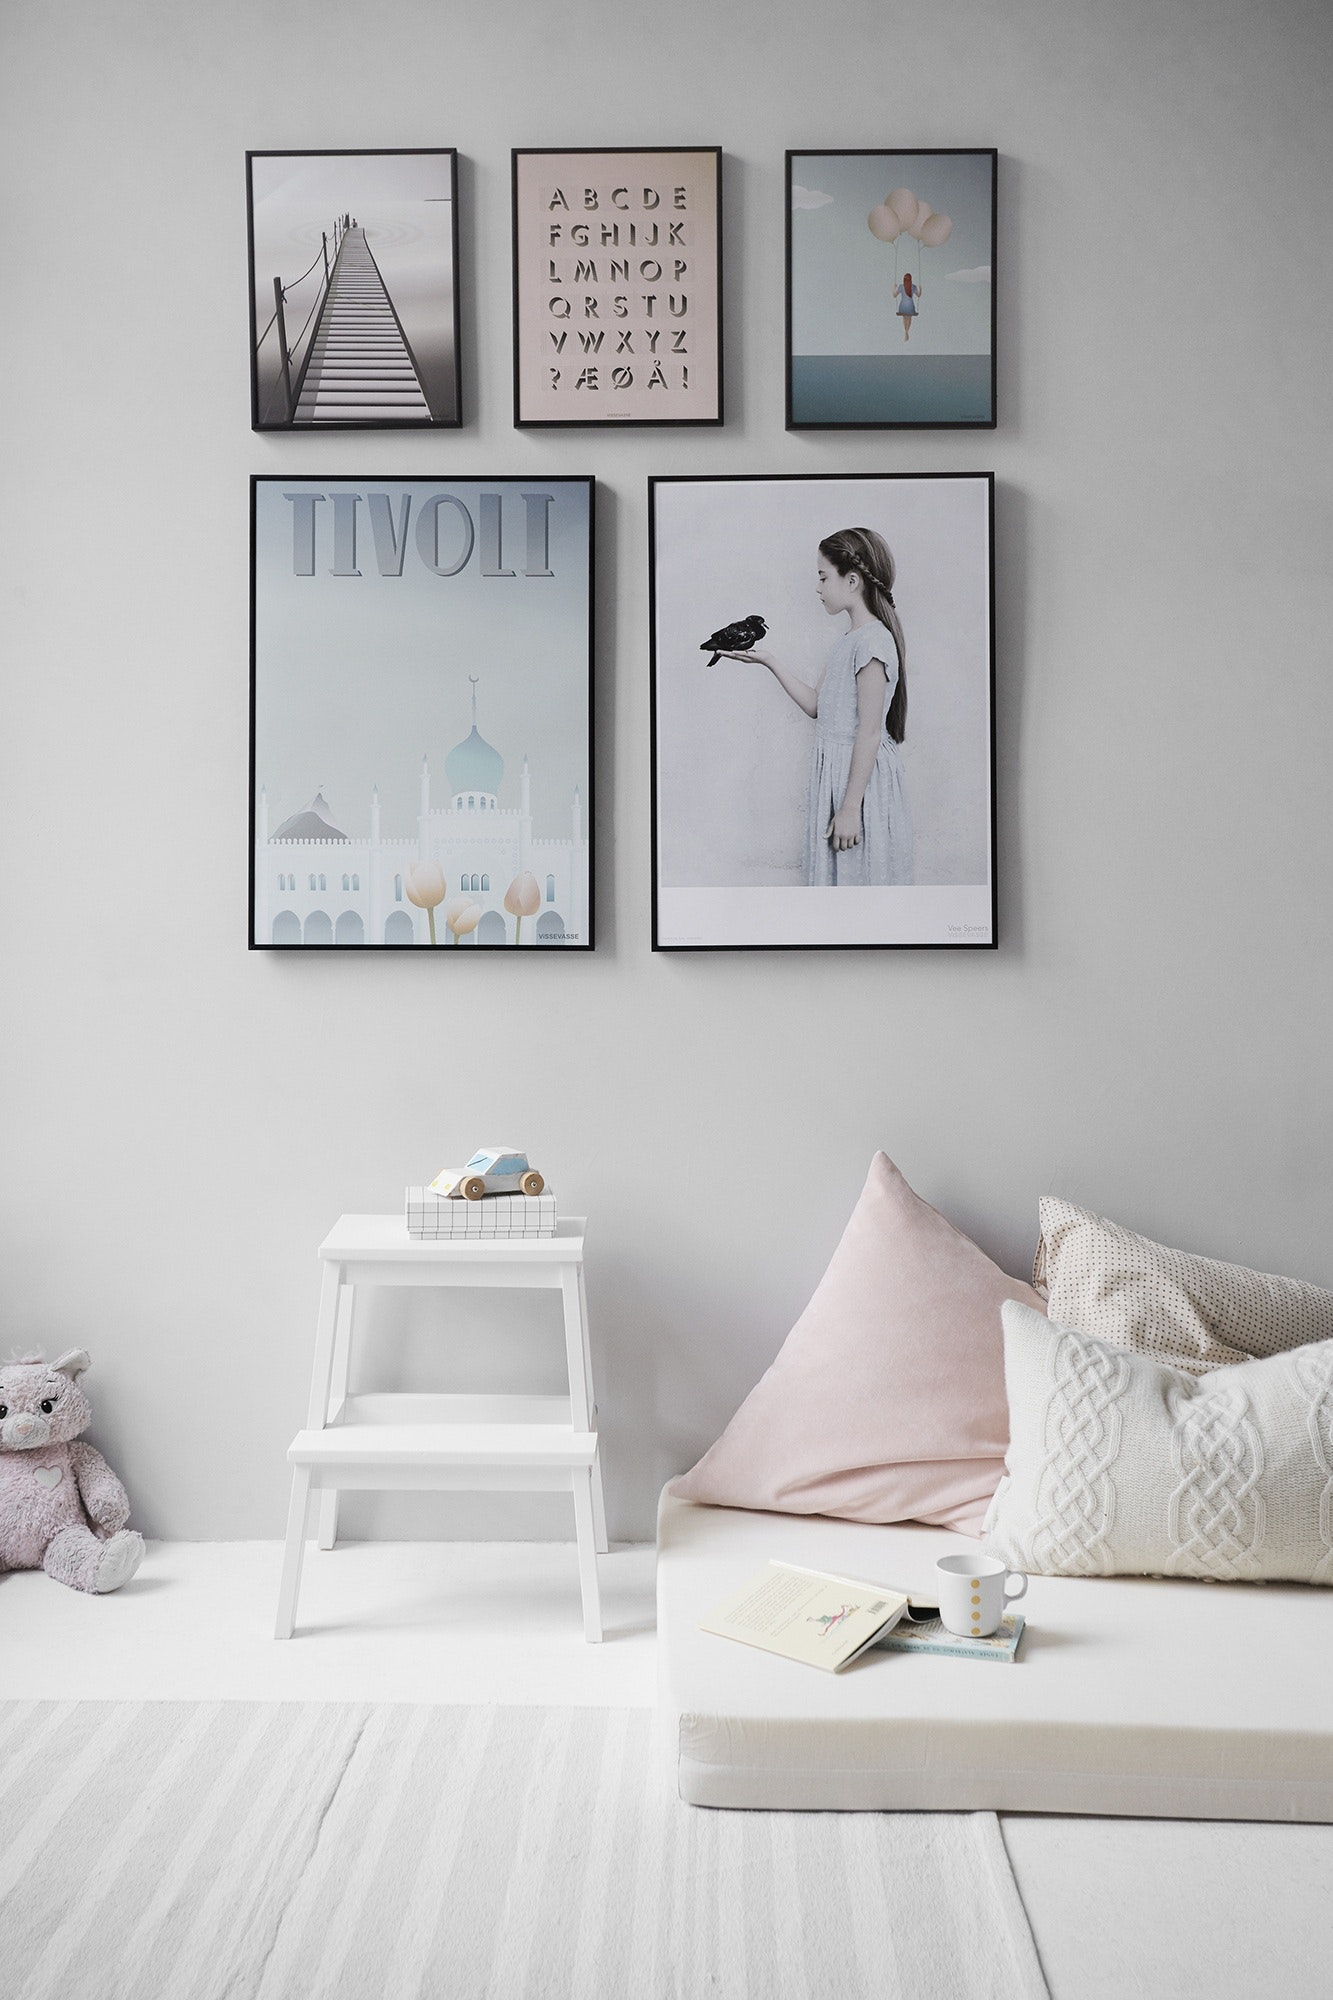 Frames and artworks